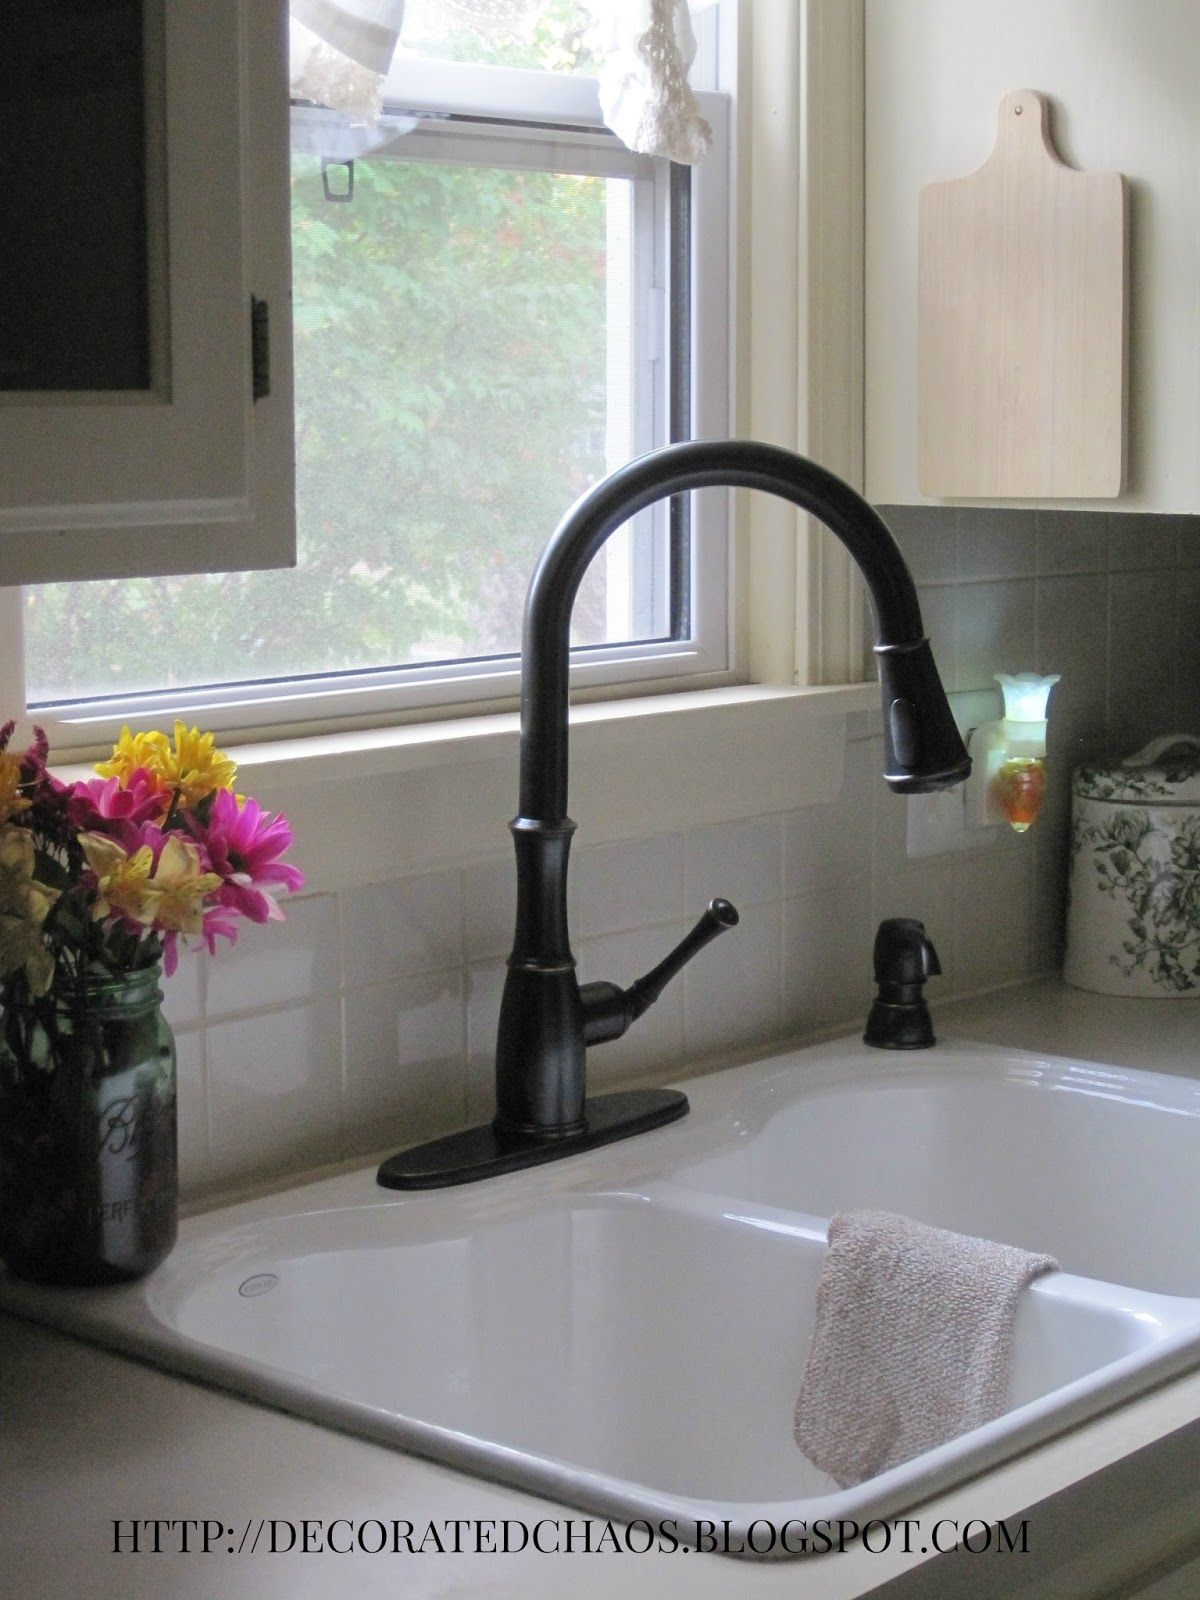 decorated chaos farmhouse sink faucet